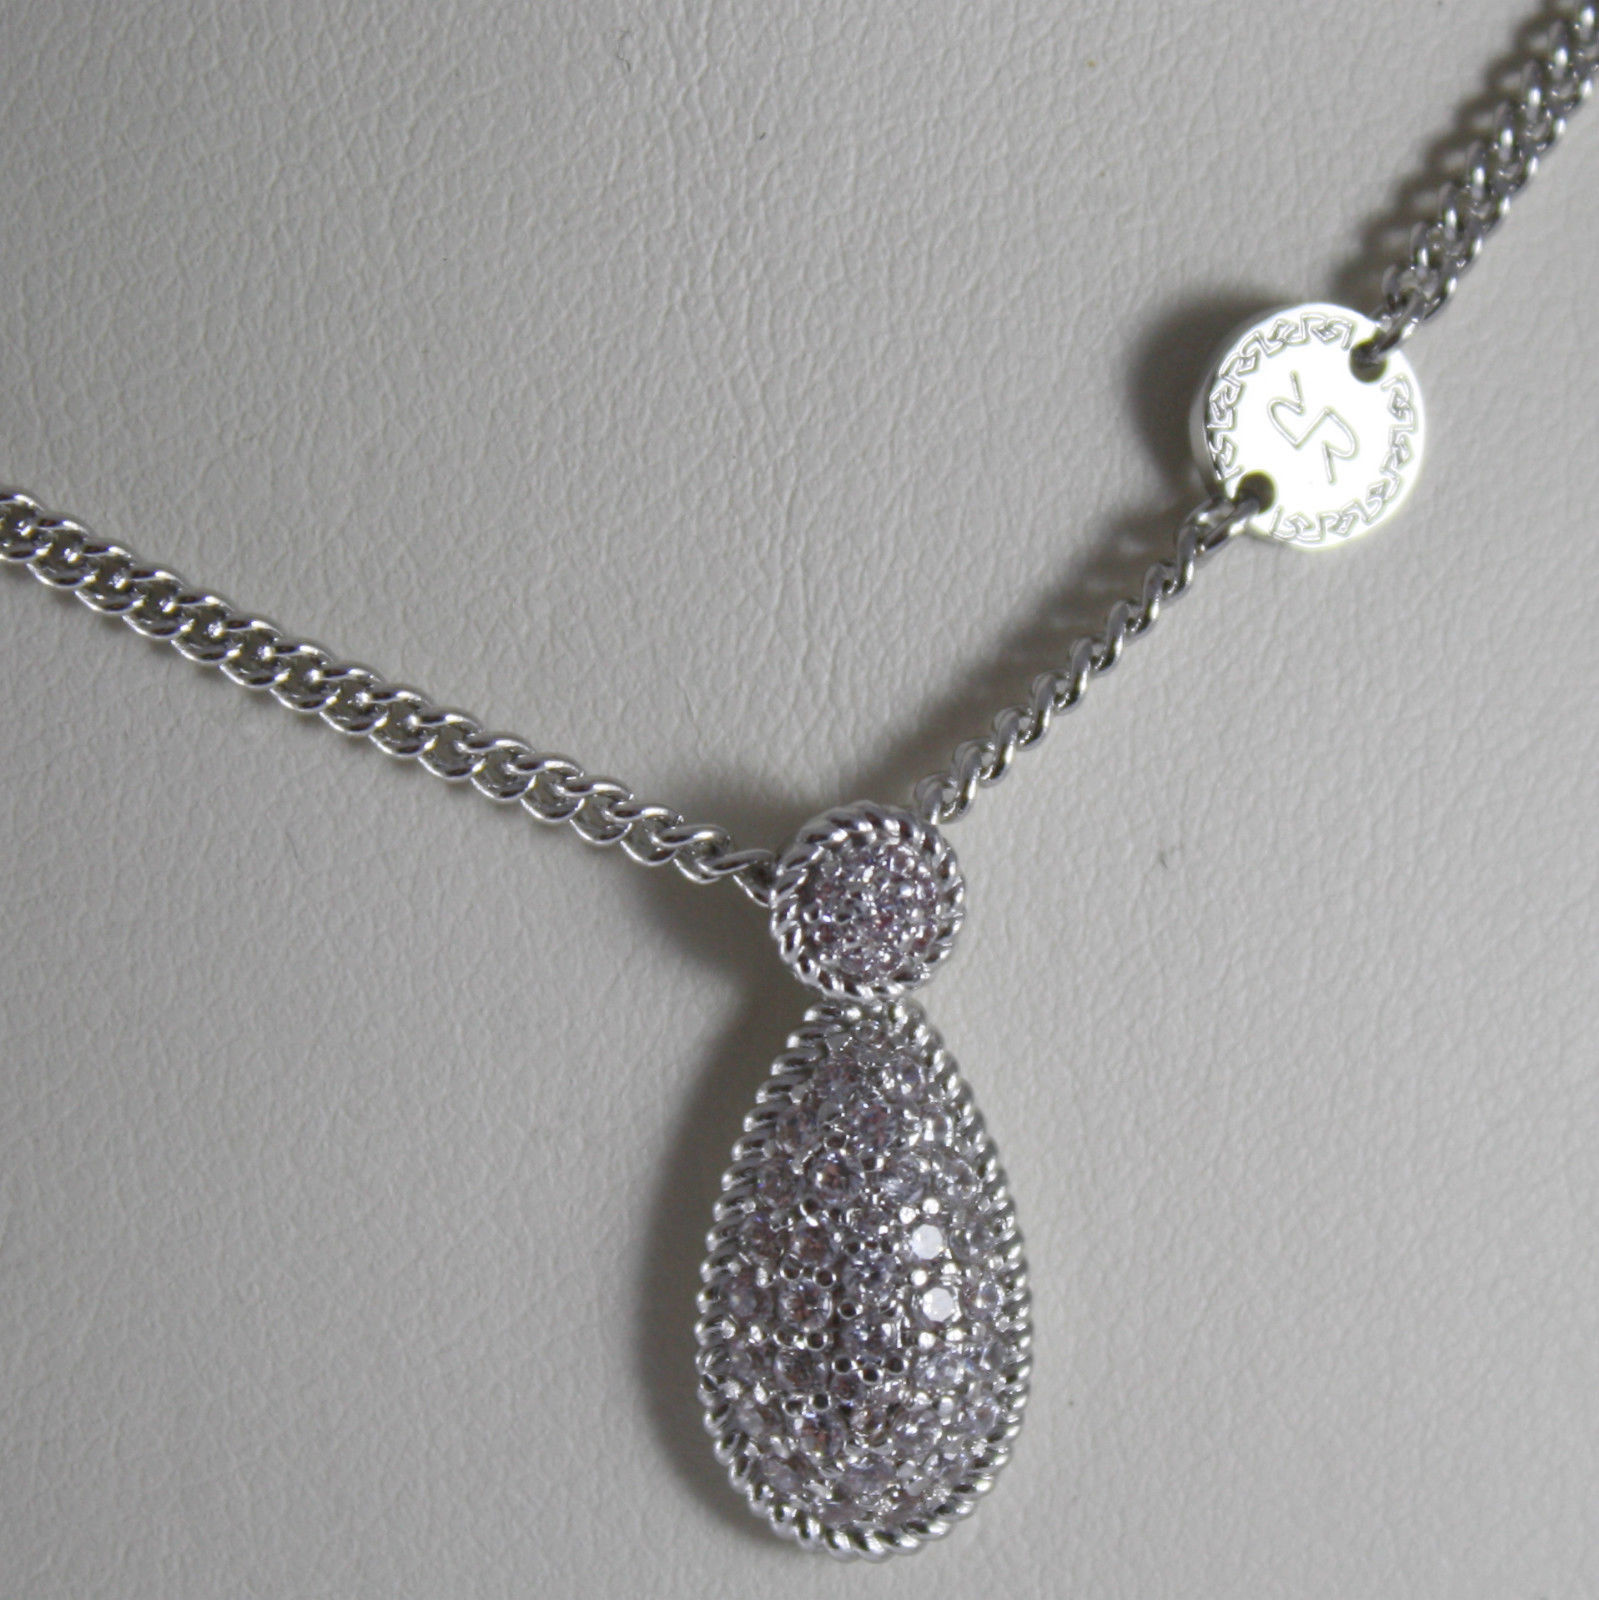 RHODIUM BRONZE NECKLACE, DROP B14KBB07 CUBIC ZIRCONIA BY REBECCA MADE IN ITALY